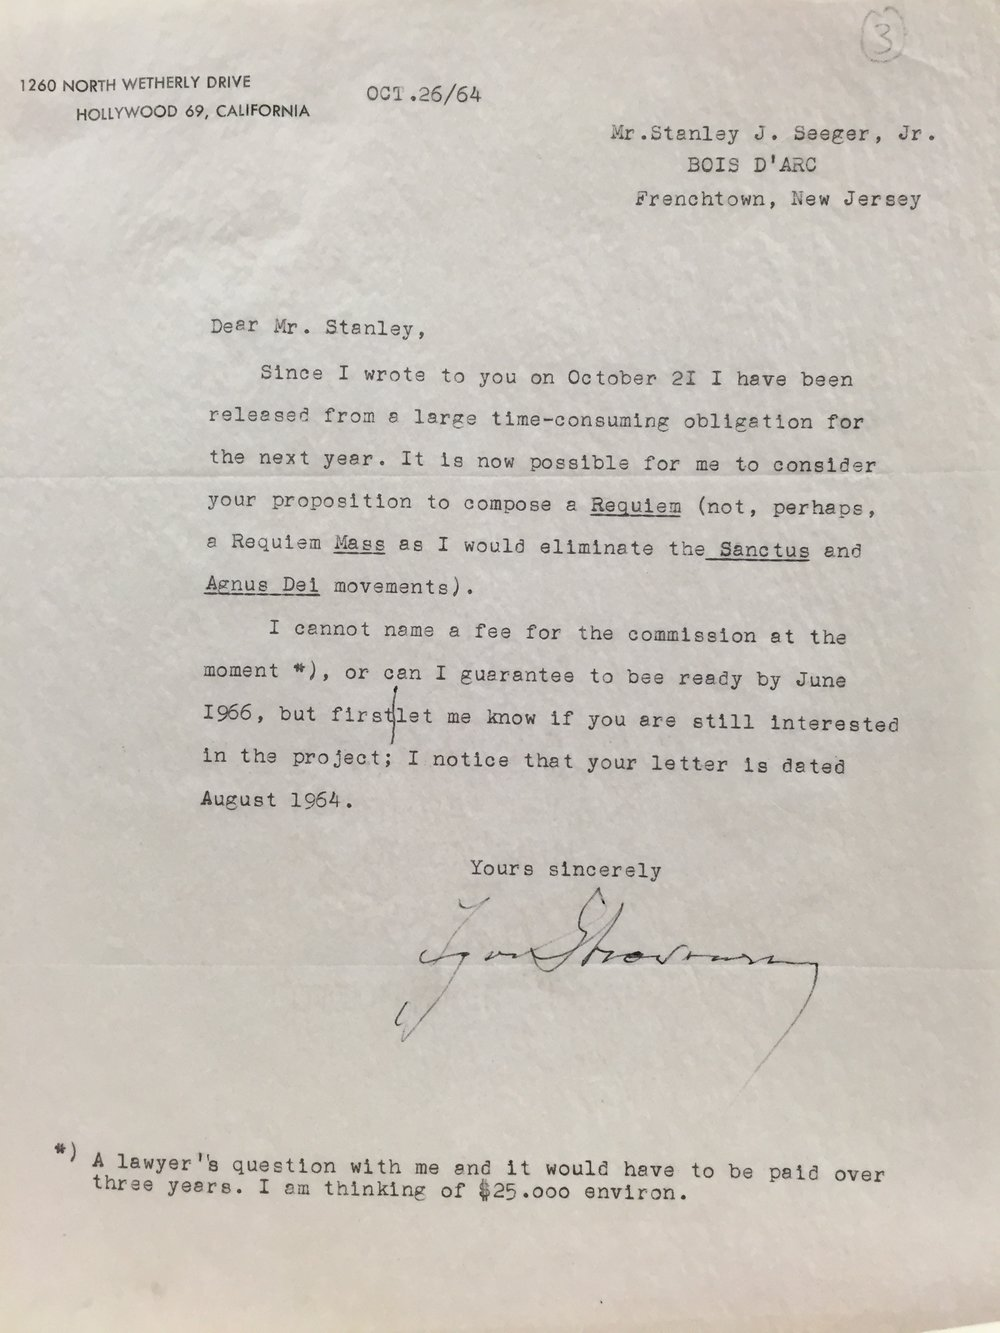 In this letter dated October 26, 1964 Stravinsky indicates a preliminary interest in Mr. Seeger's commission.